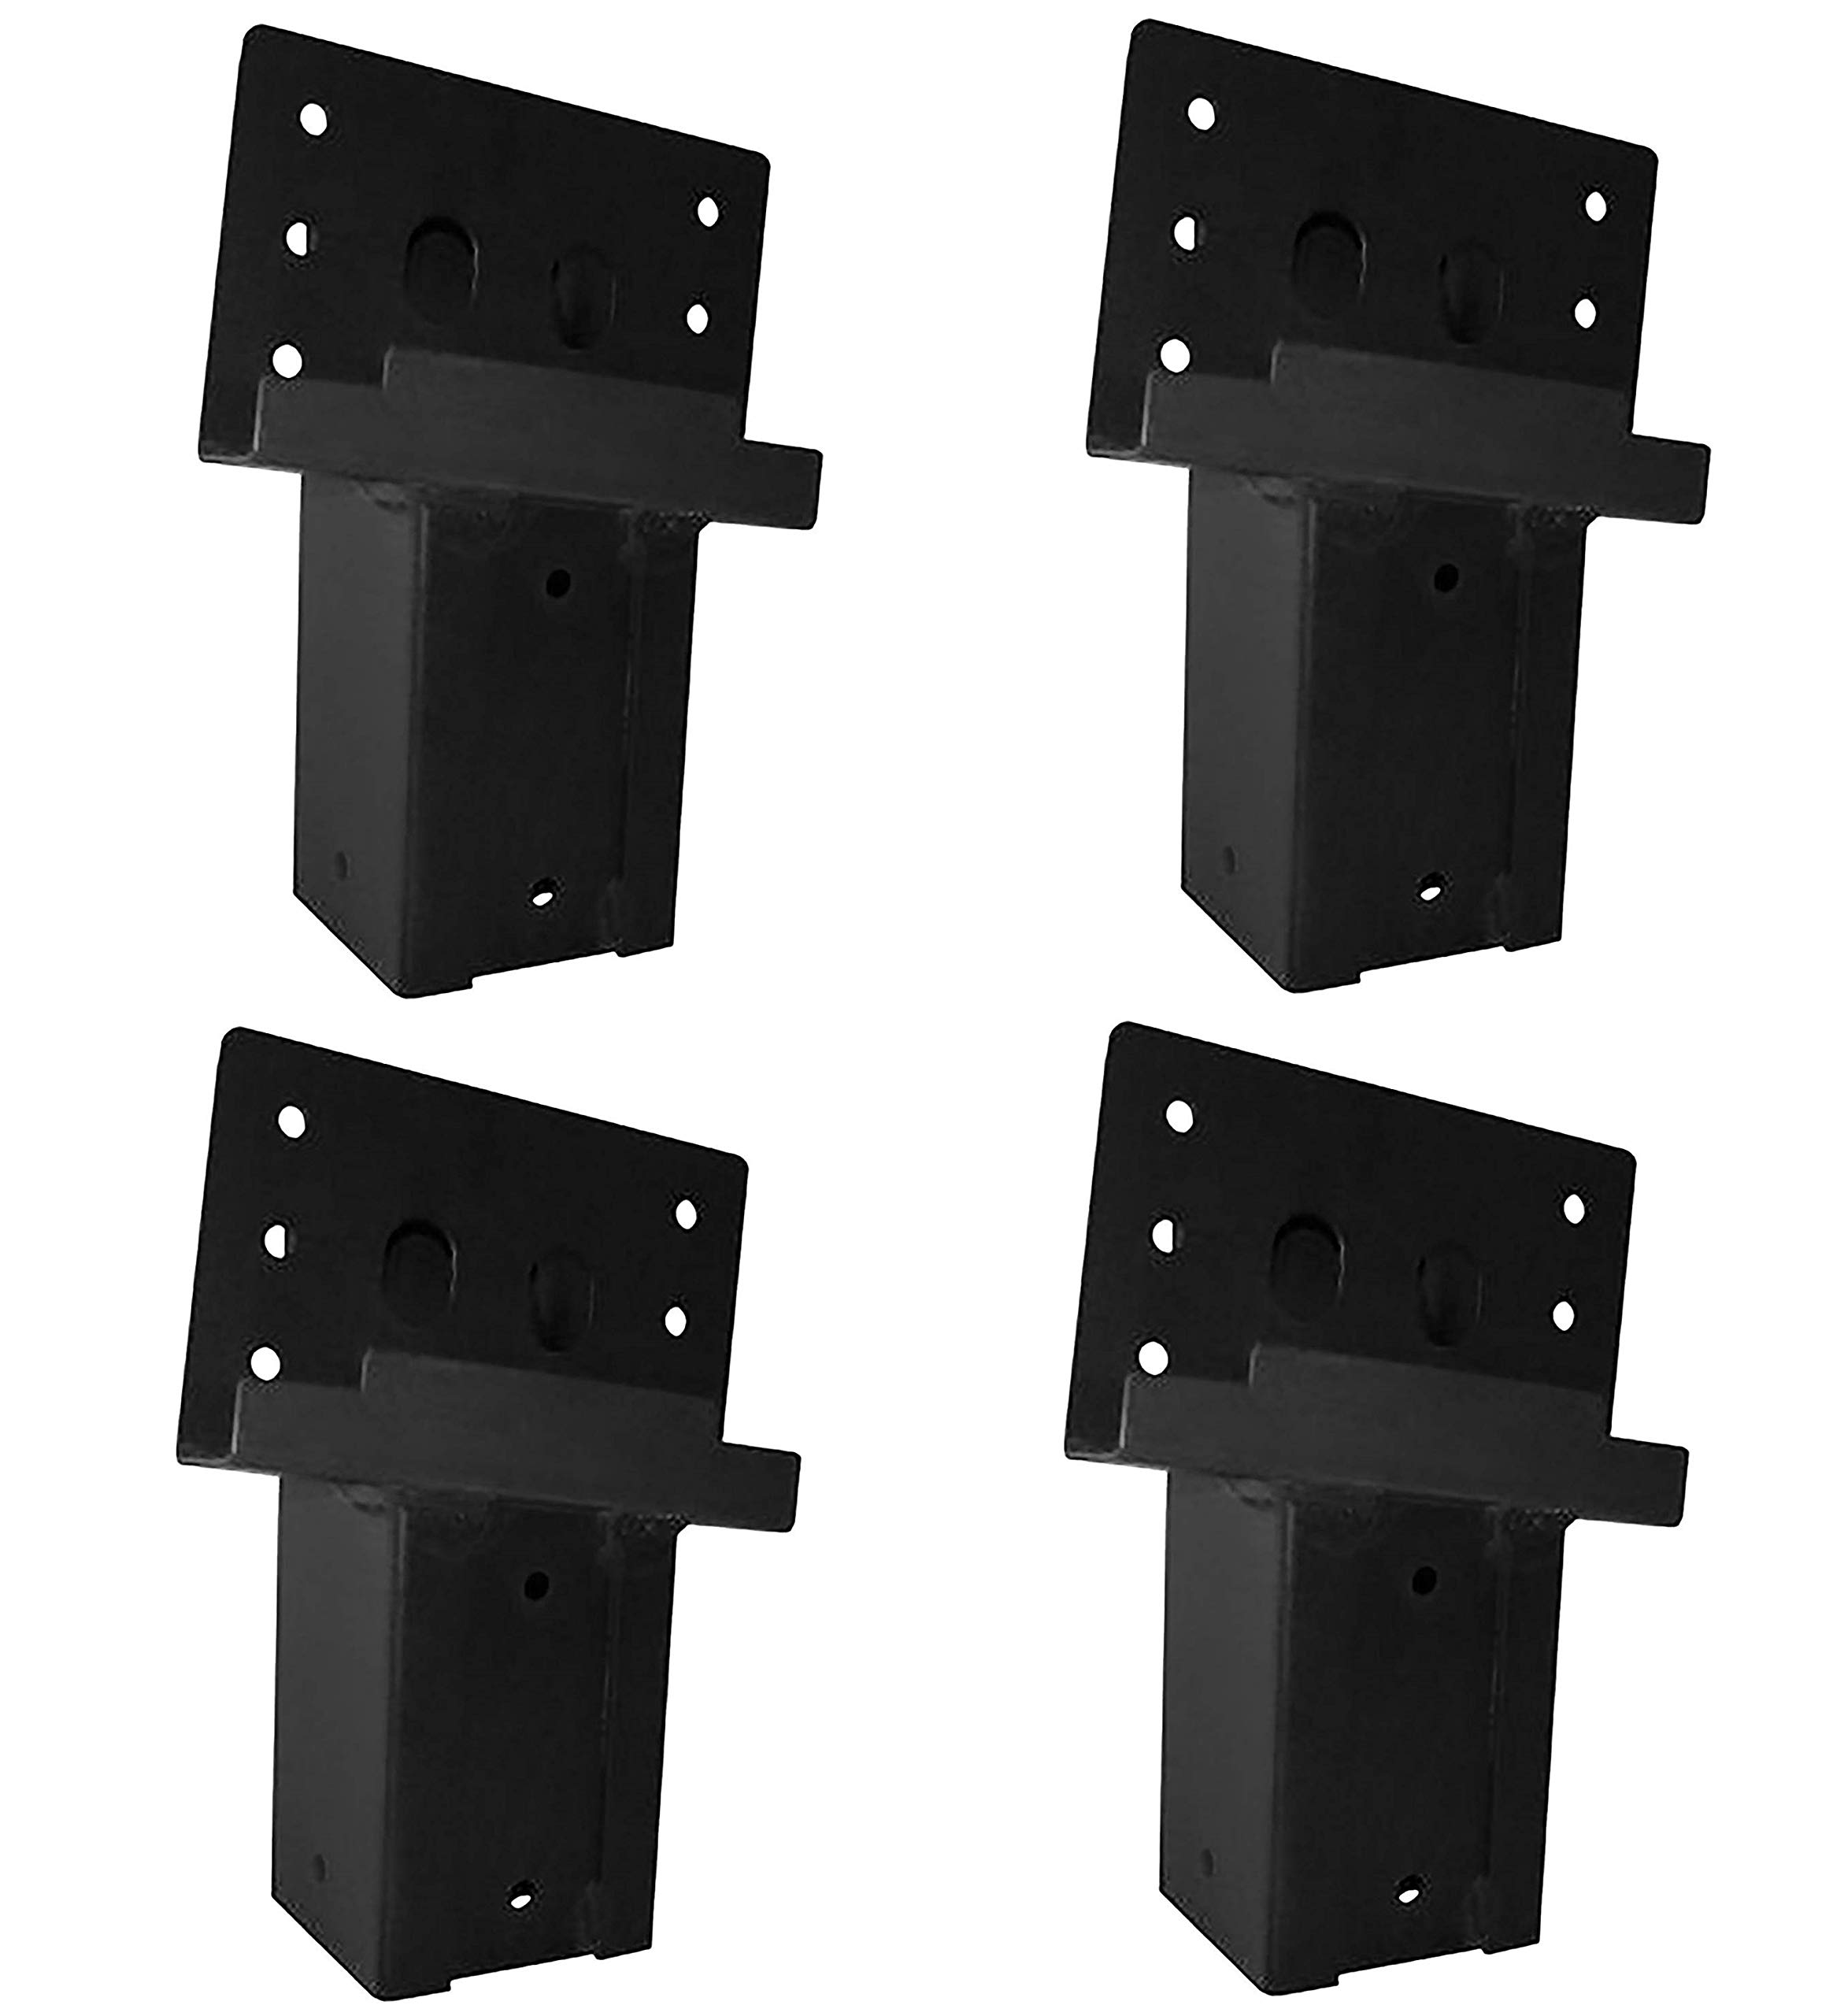 Elevators 4x4 Brackets for Deer Blinds, Playhouses, Swing Sets, Tree Houses. Made in The USA with Premium Construction Grade Steel. (Set of 4) (4 X Pack of 4)